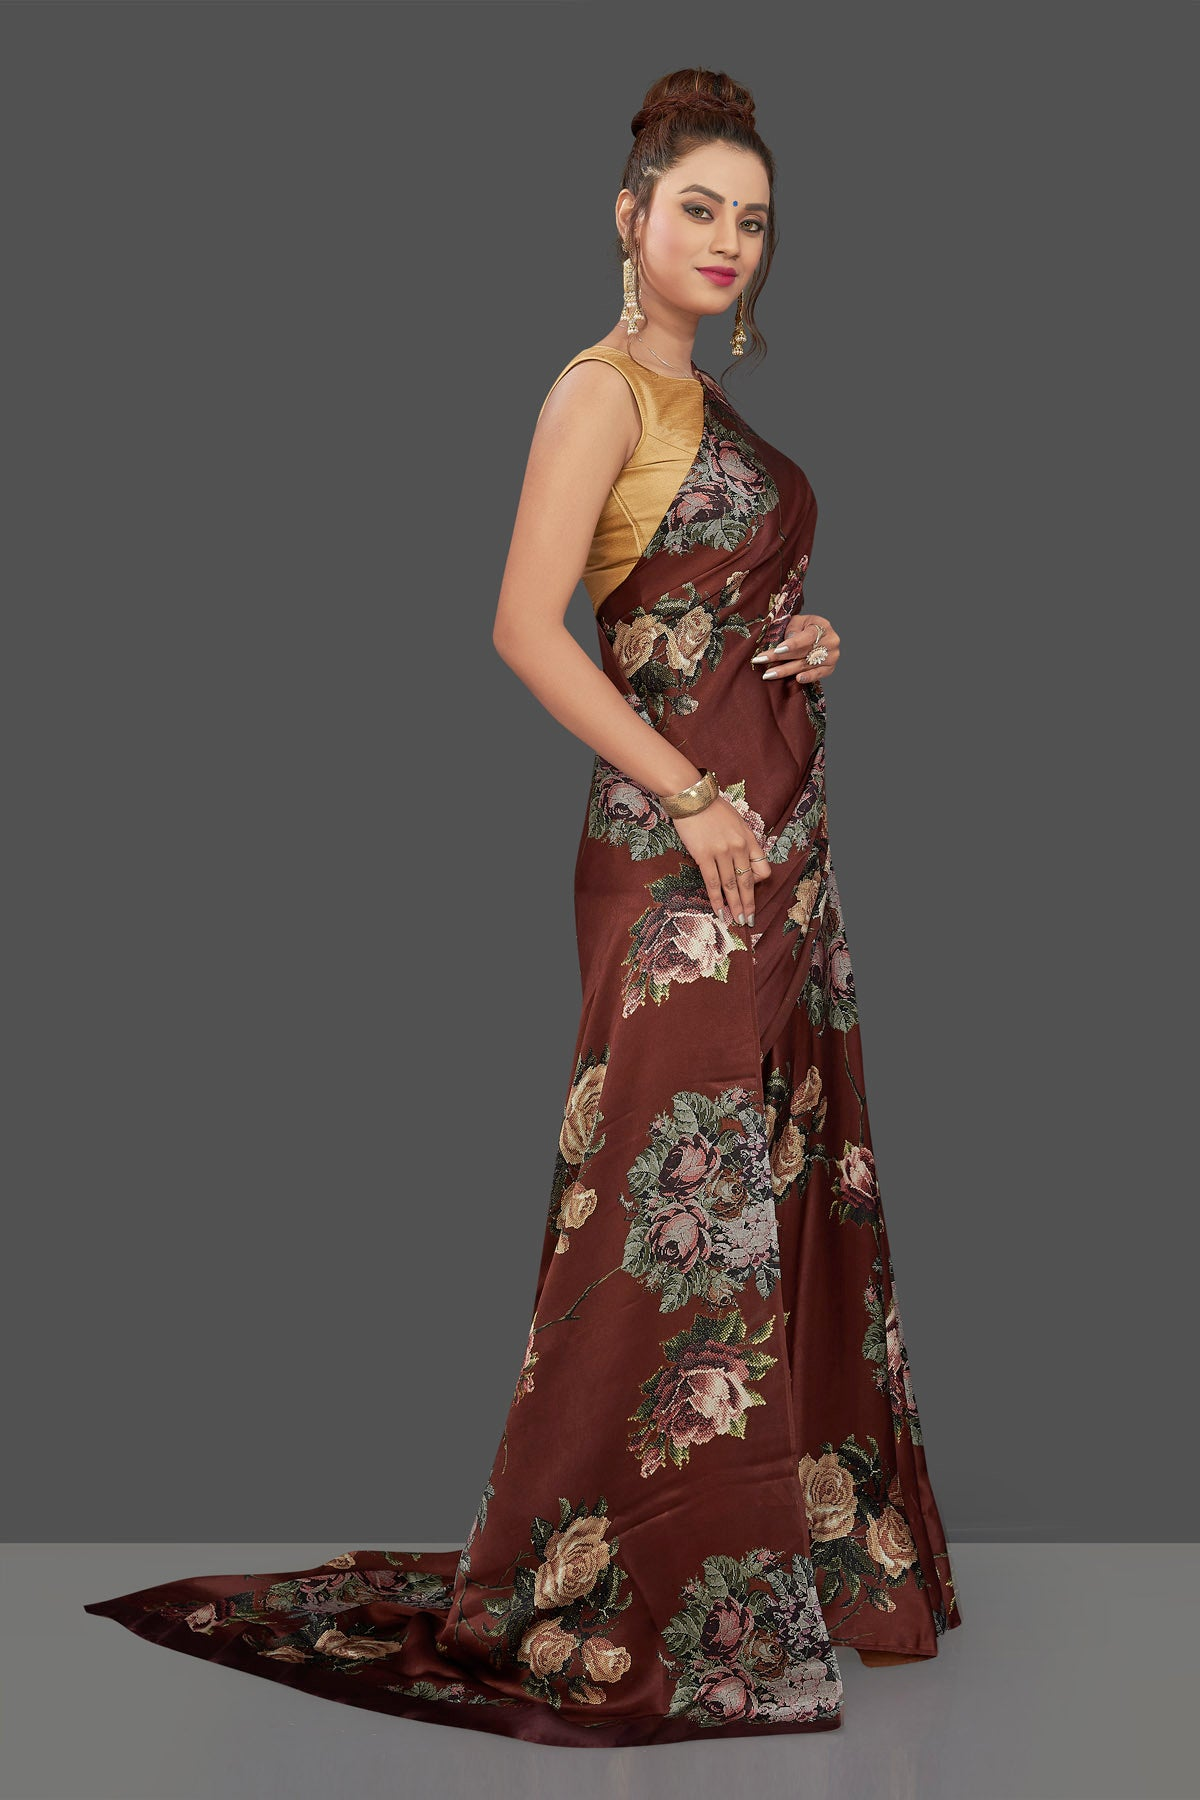 Buy gorgeous brown floral print crepe silk sari online in USA. Shop for weddings and special occasions stunning crepe sarees, printed saris, georgette sarees, designer sarees in USA from Pure Elegance Indian clothing store in USA. Shop online now.-side